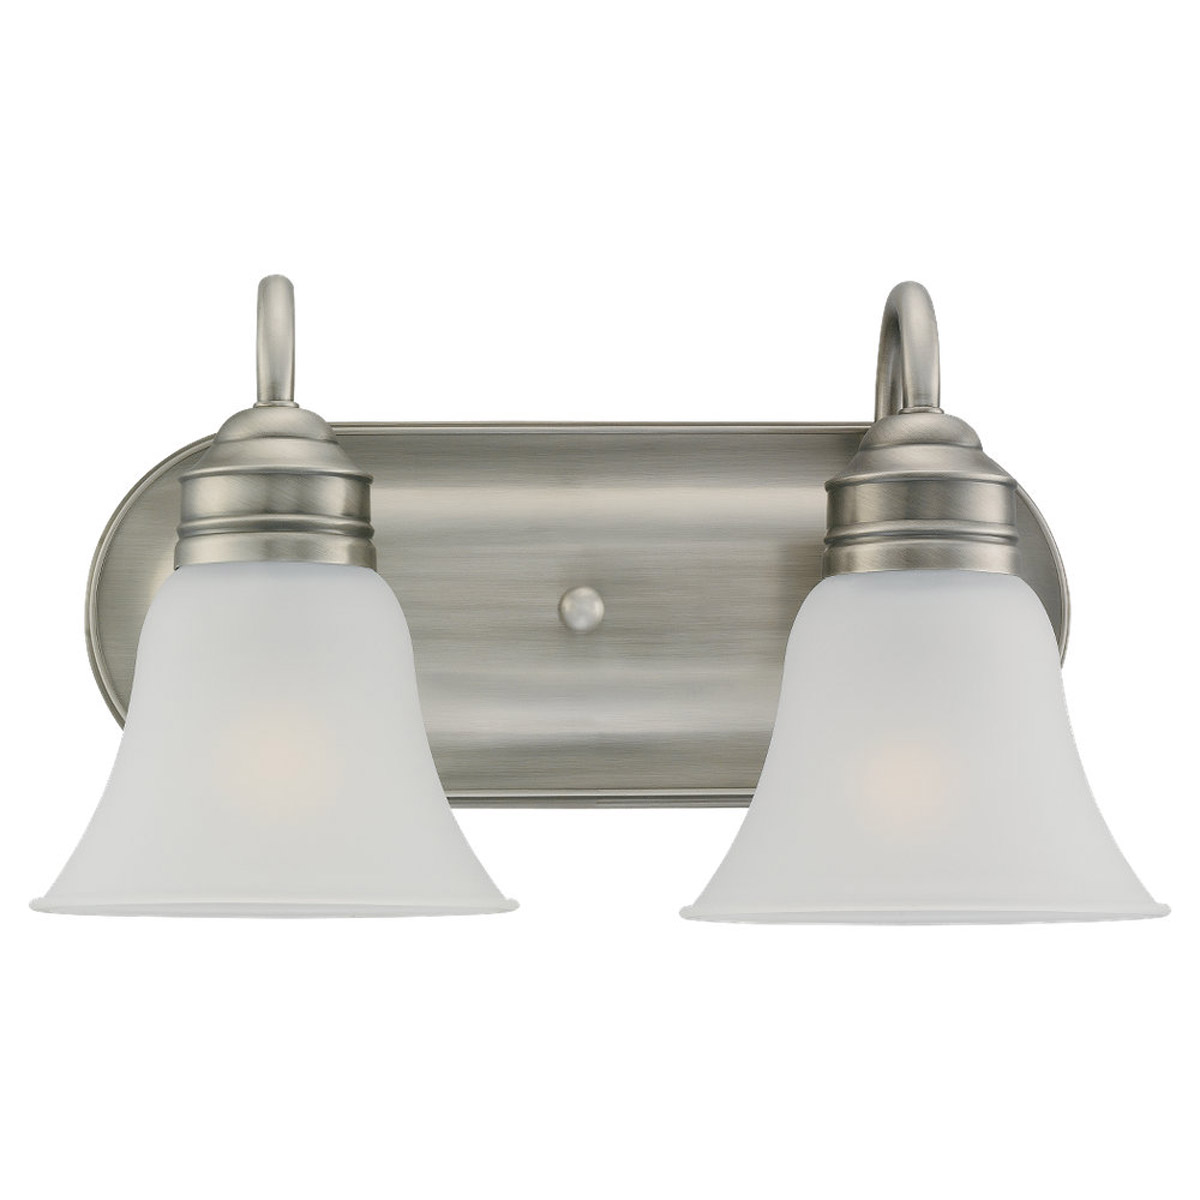 Sea Gull Lighting Gladstone 2 Light Bath Vanity in Antique Brushed Nickel 49851BLE-965